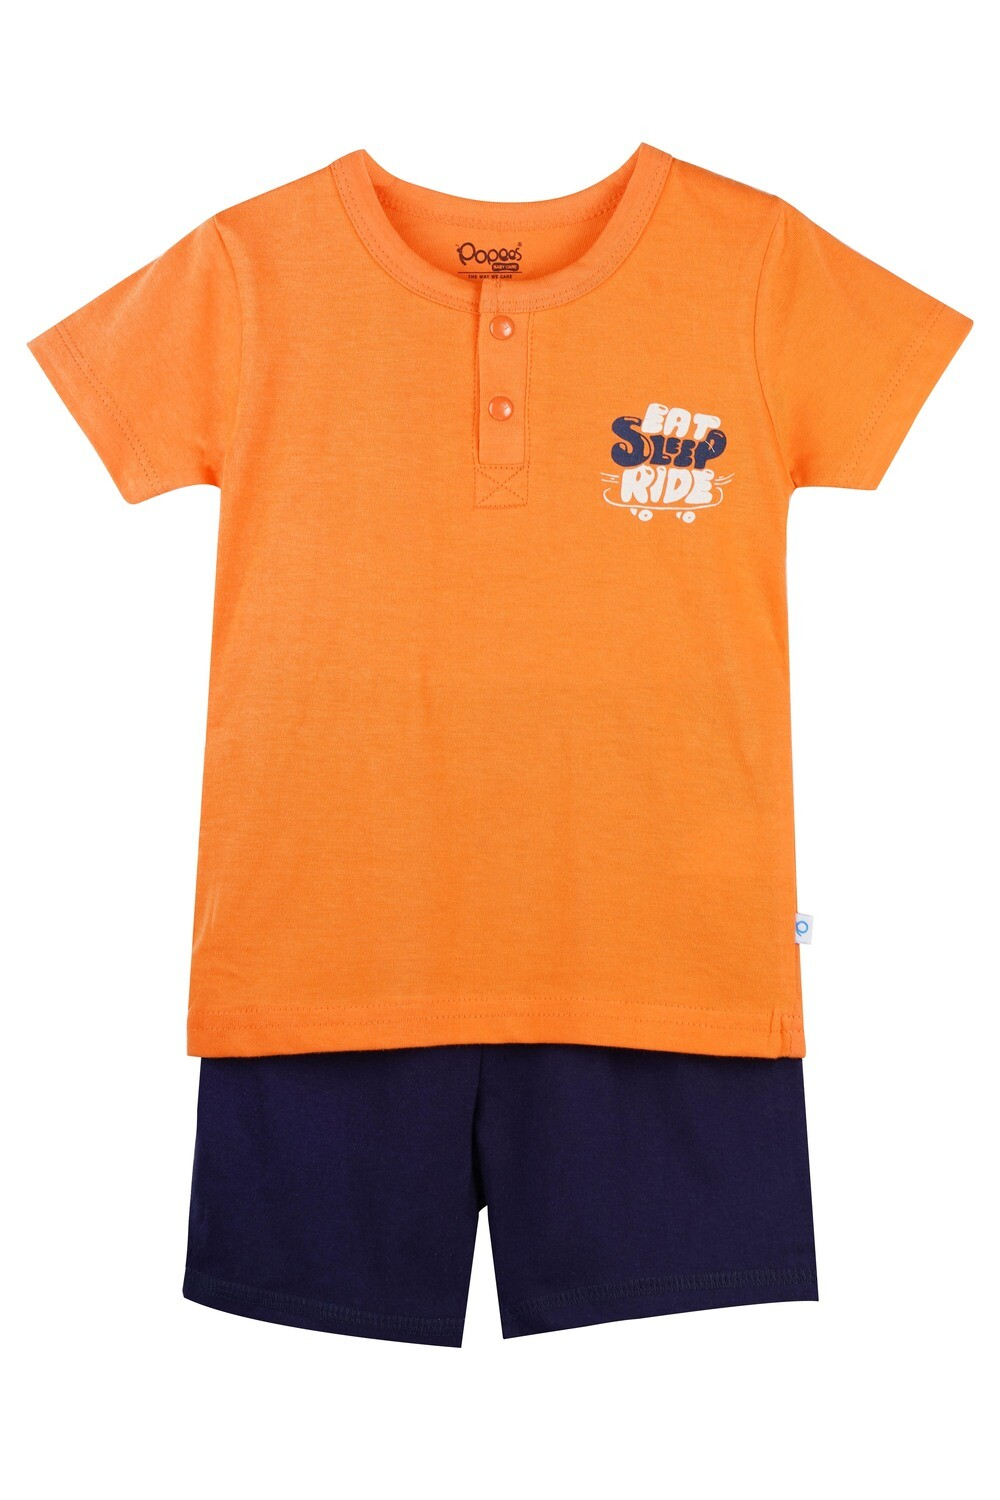 LENIN NECTARINE Half Sleeve Front Half Open Top and Trouser SINGLE JERSEY for Baby Boys